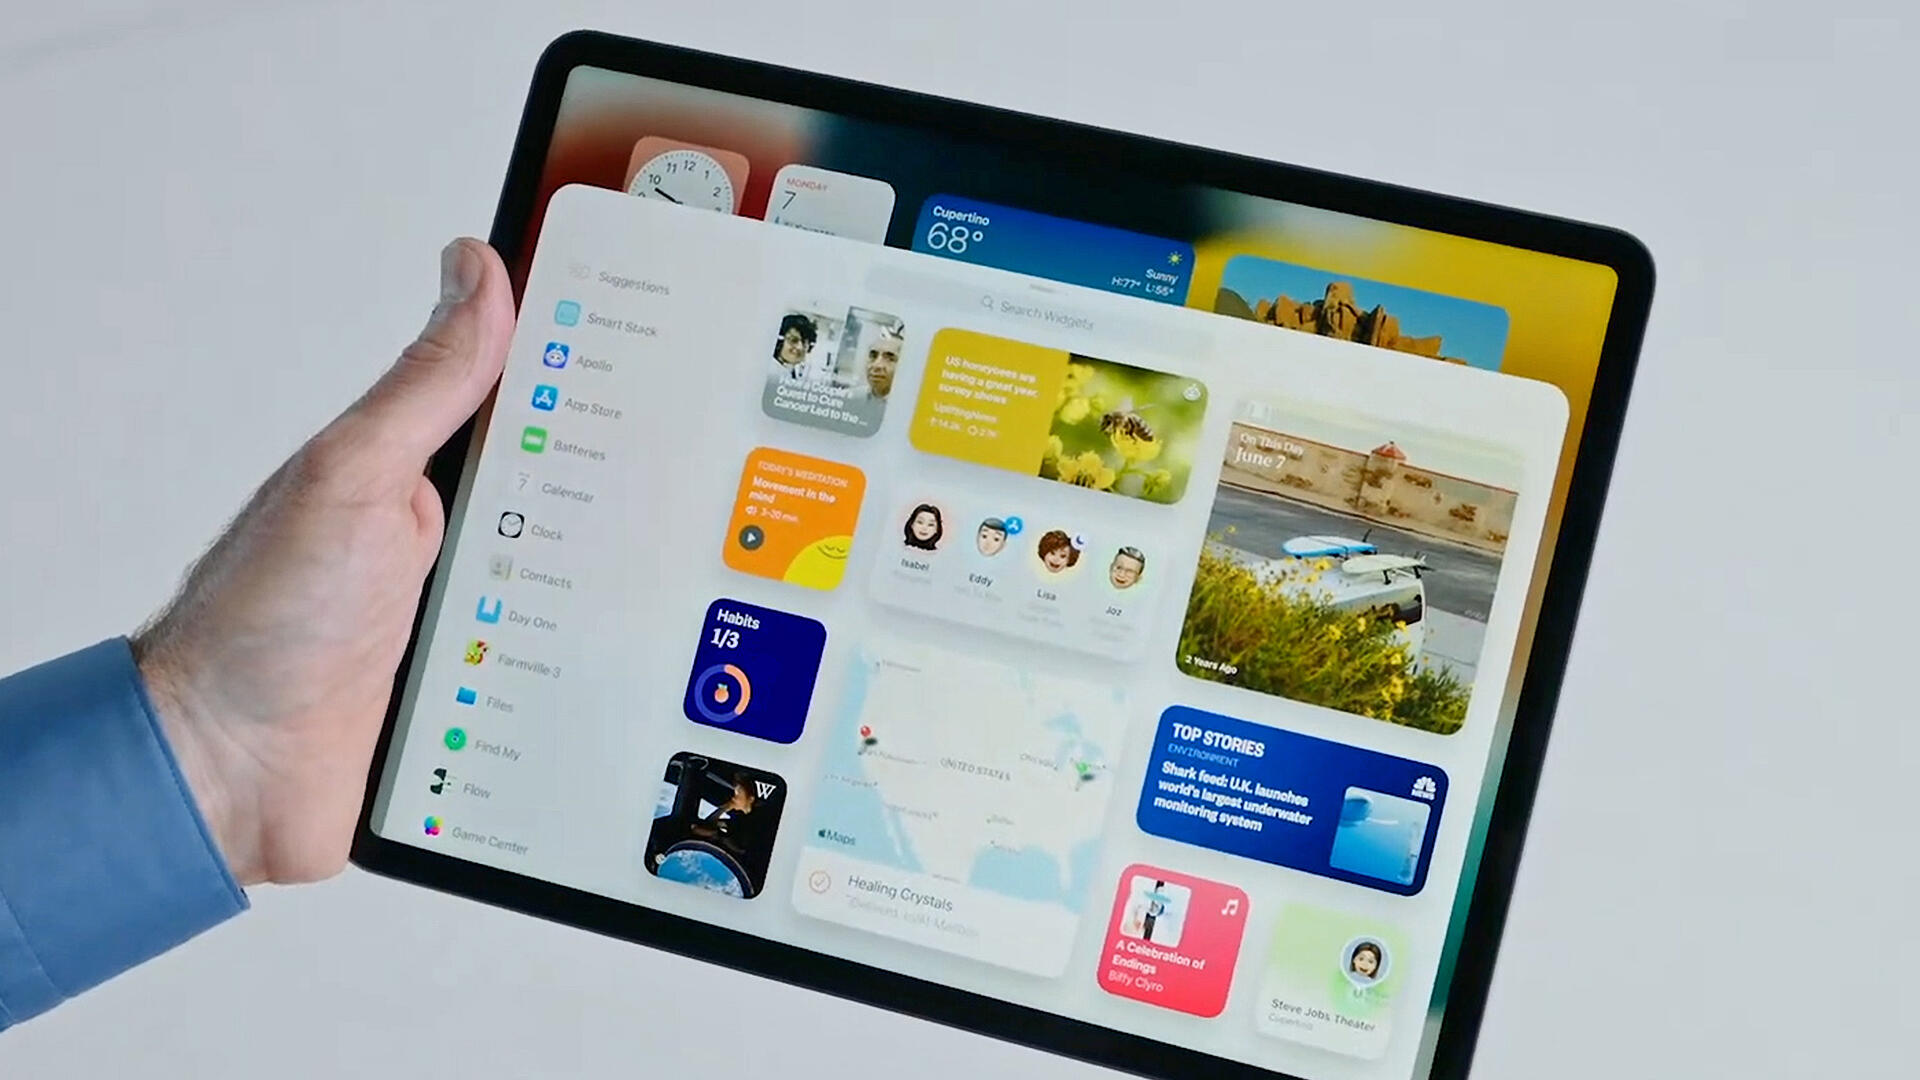 Video: iPadOS 15: How it changes the iPad and what it still doesn't do